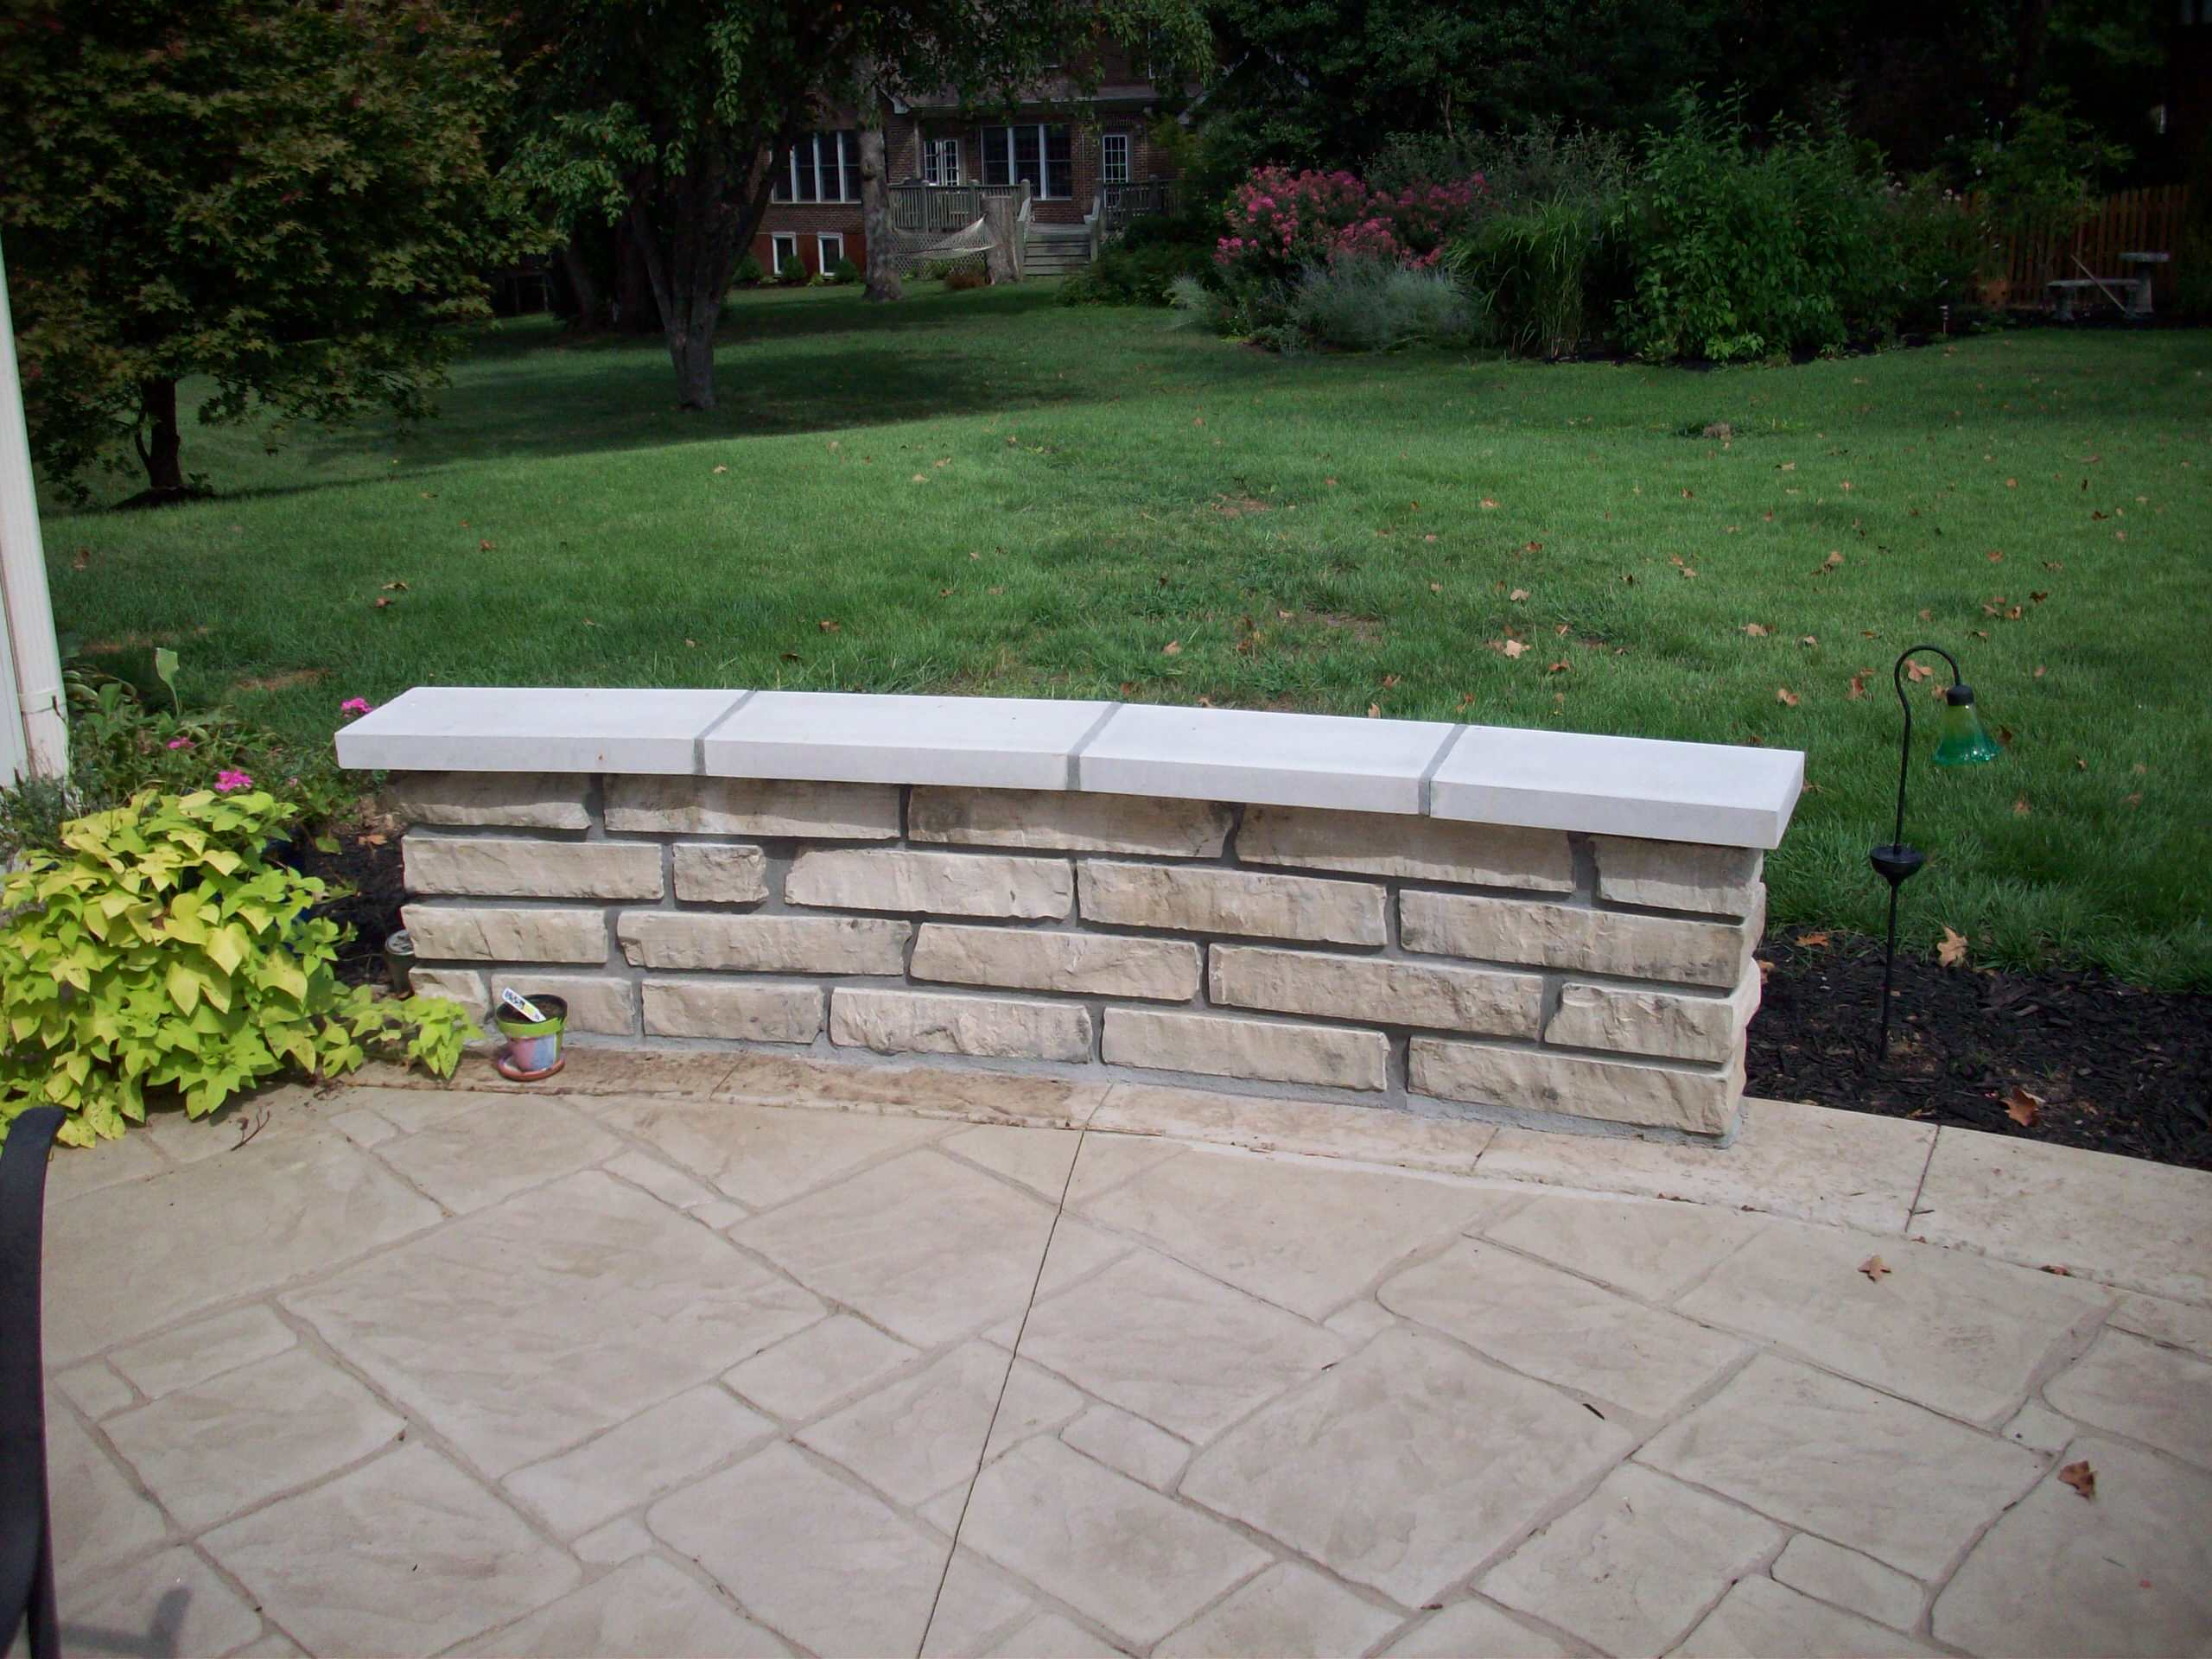 Webster Groves, Missouri Aux Vases Limestone Masonry Sitting Wall with Indiana L